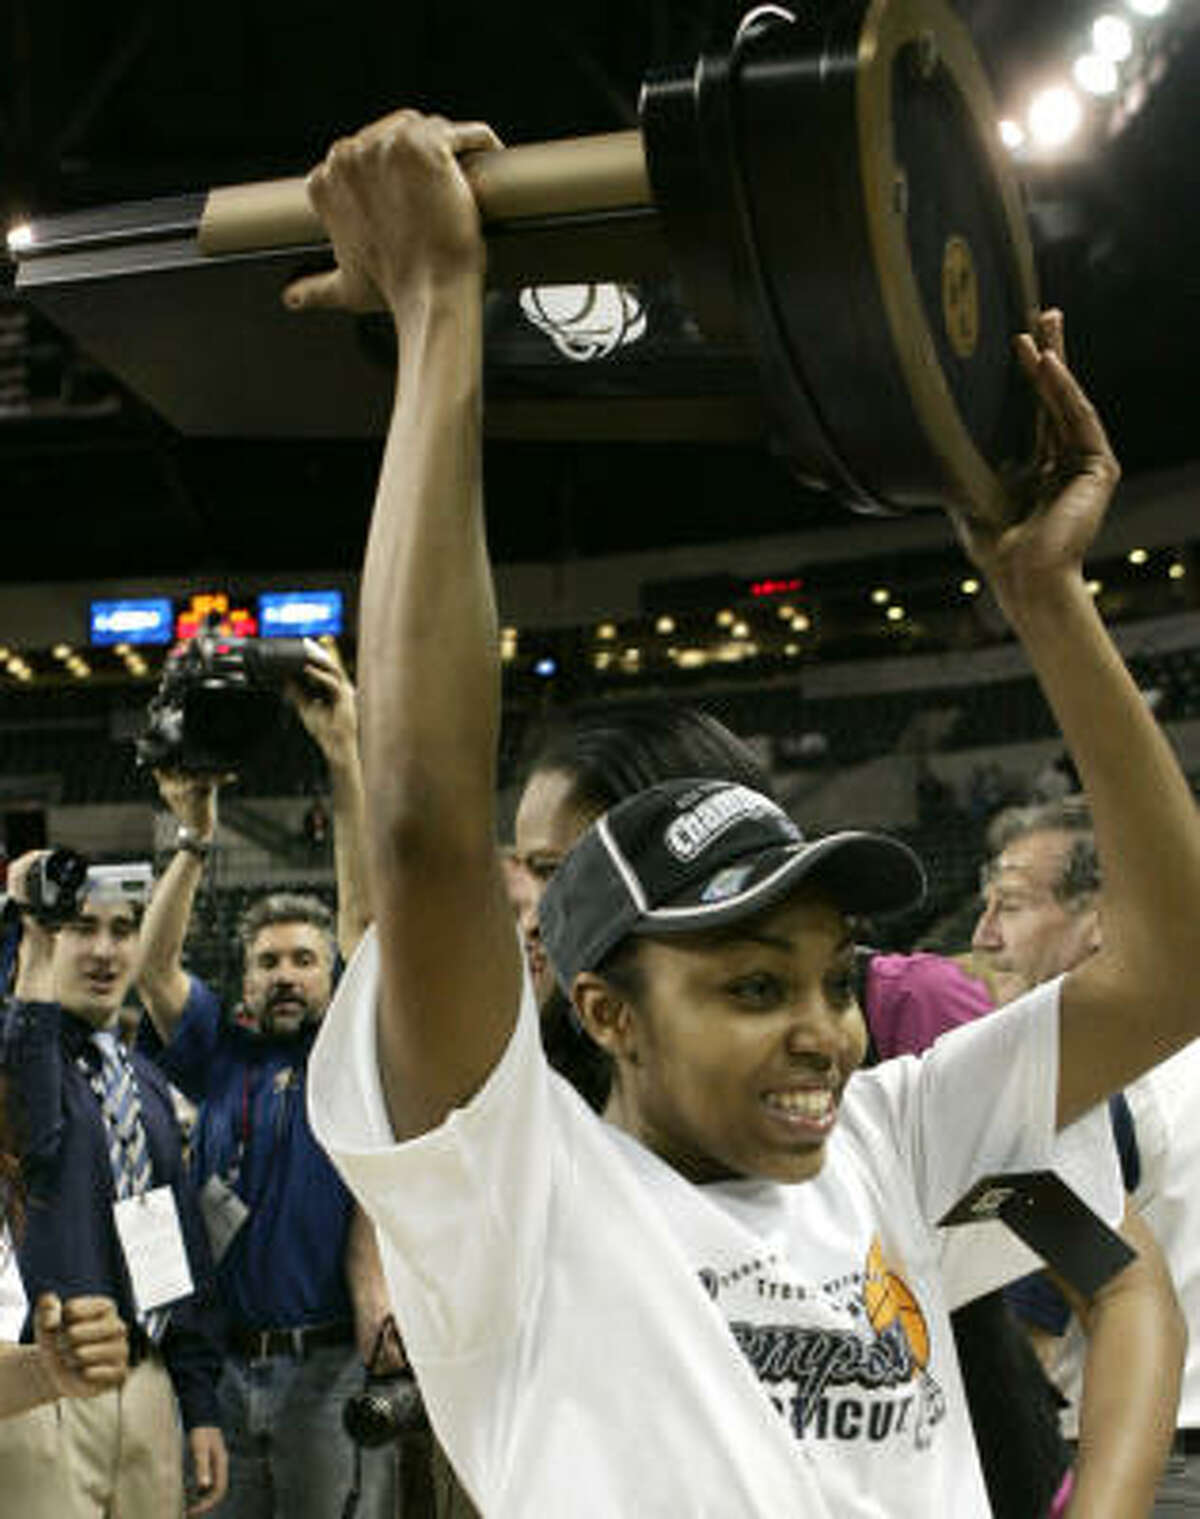 Trenton (N.J.) Region, Regional Finals: Connecticut 83, Arizona State 64 Connecticut's Renee Montgomery holds the regional champion's trophy after Connecticut beat Arizona State in an NCAA women's college basketball tournament regional final.